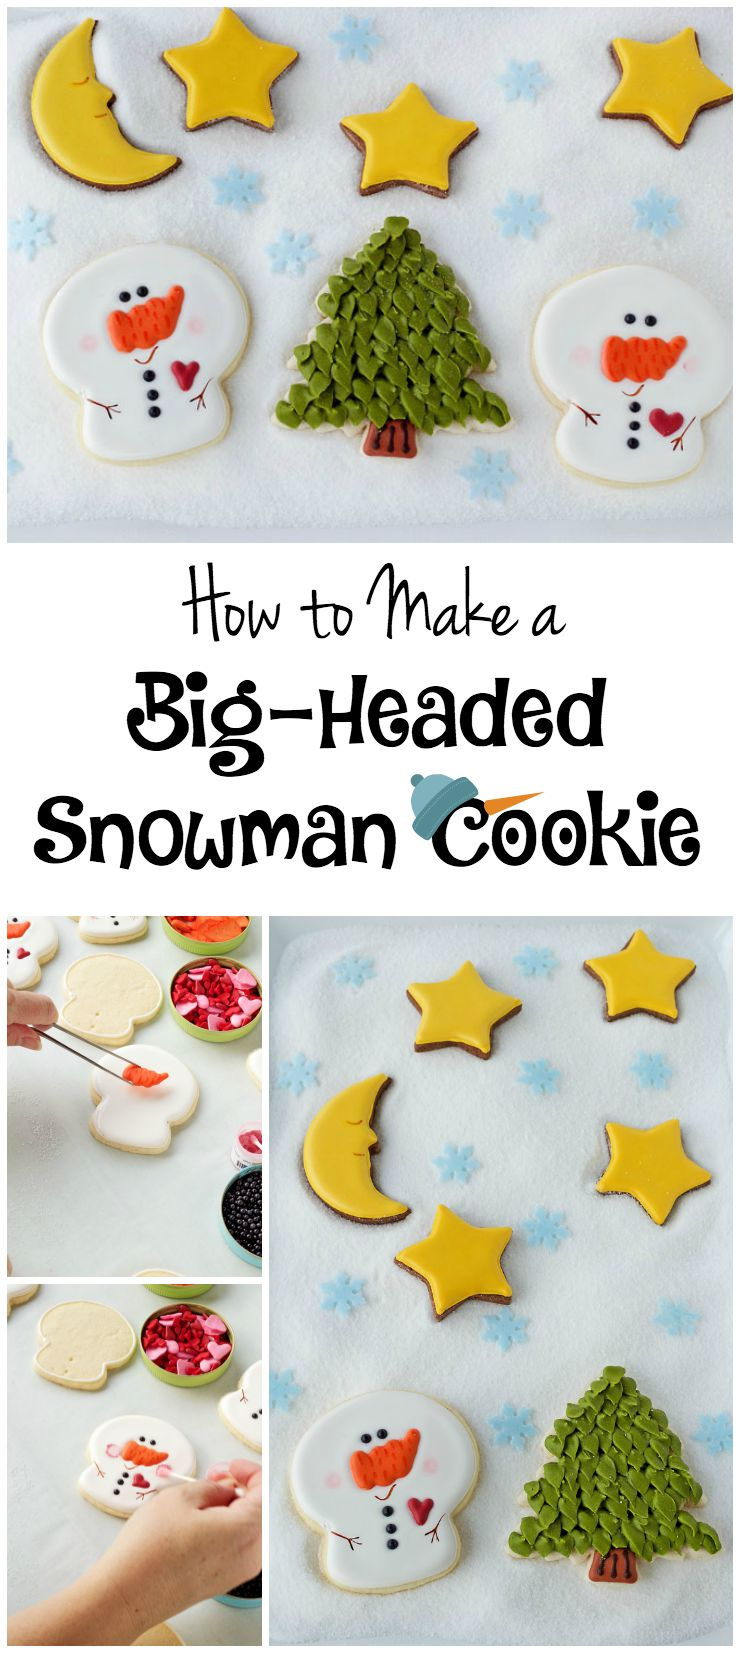 Big-headed snowman cookies via www.thebearfootbaker.com